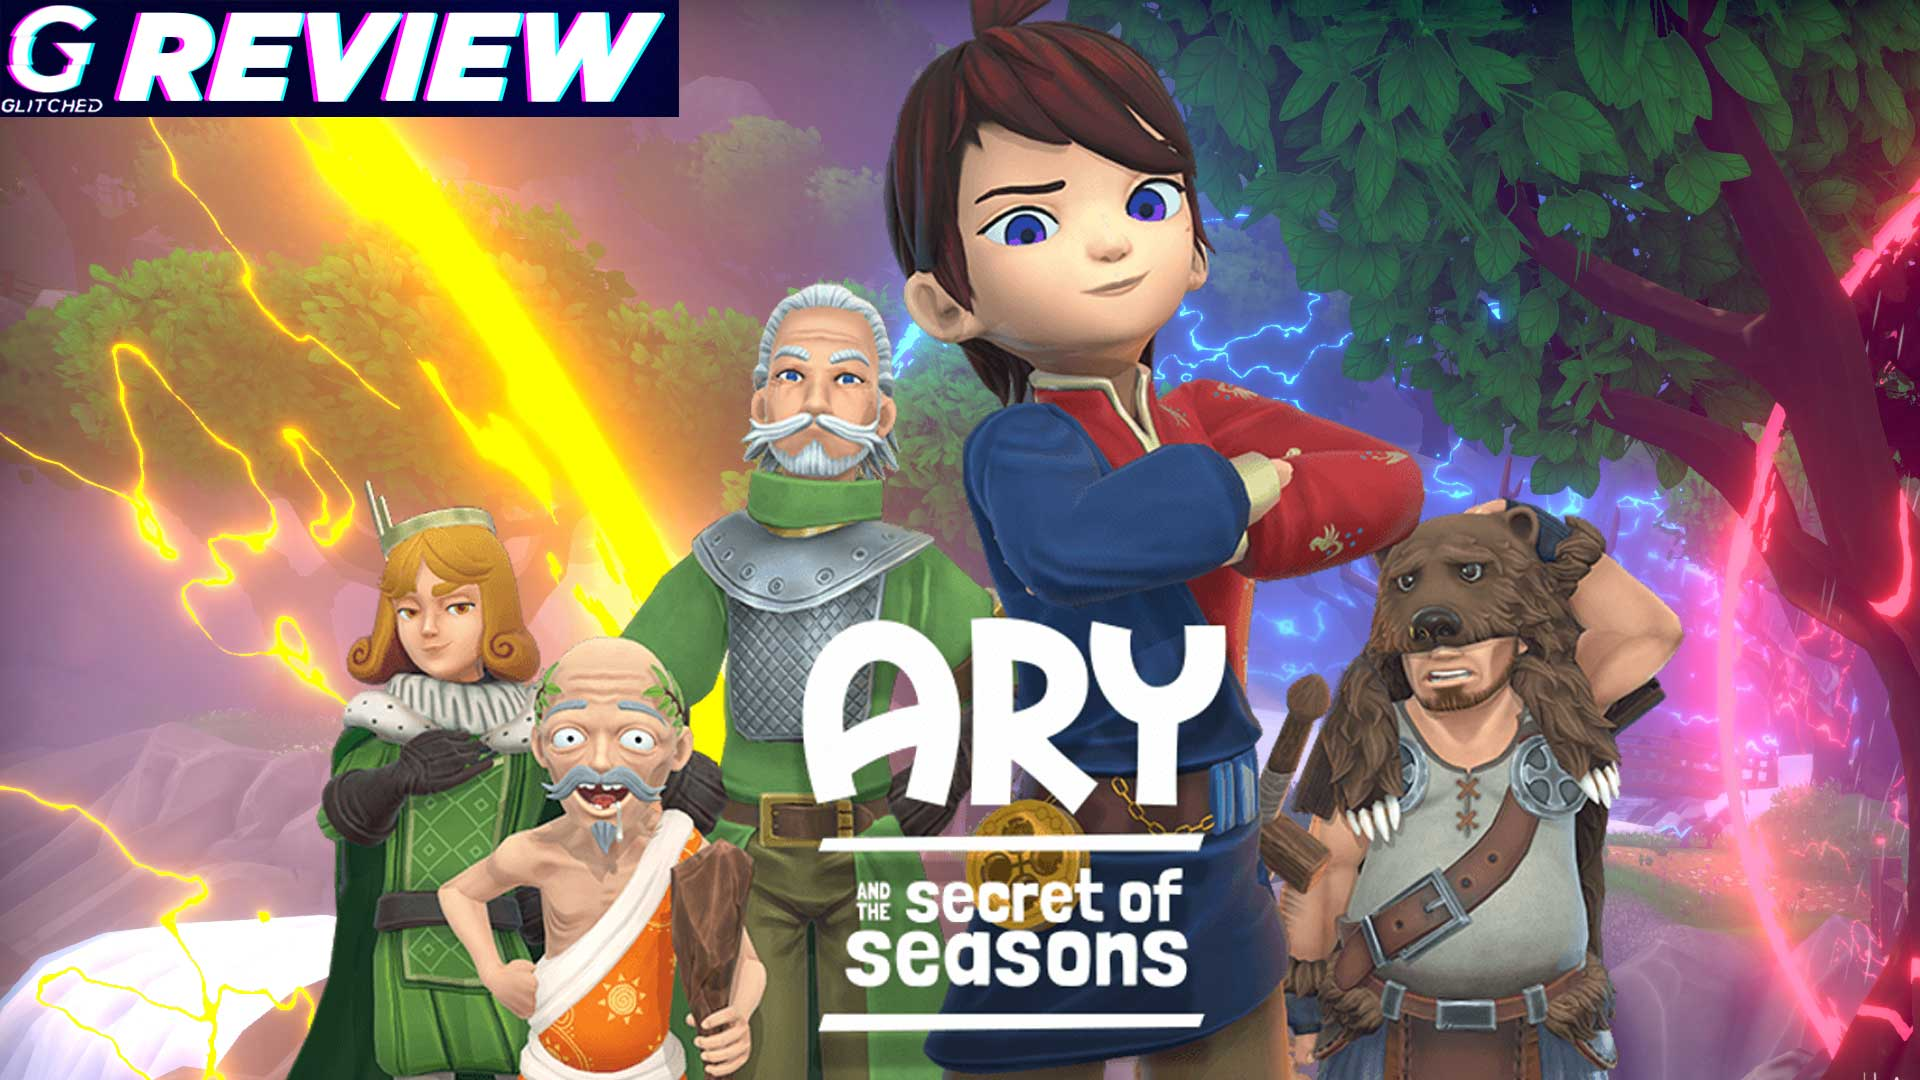 Ary and the Secret of Seasons Review